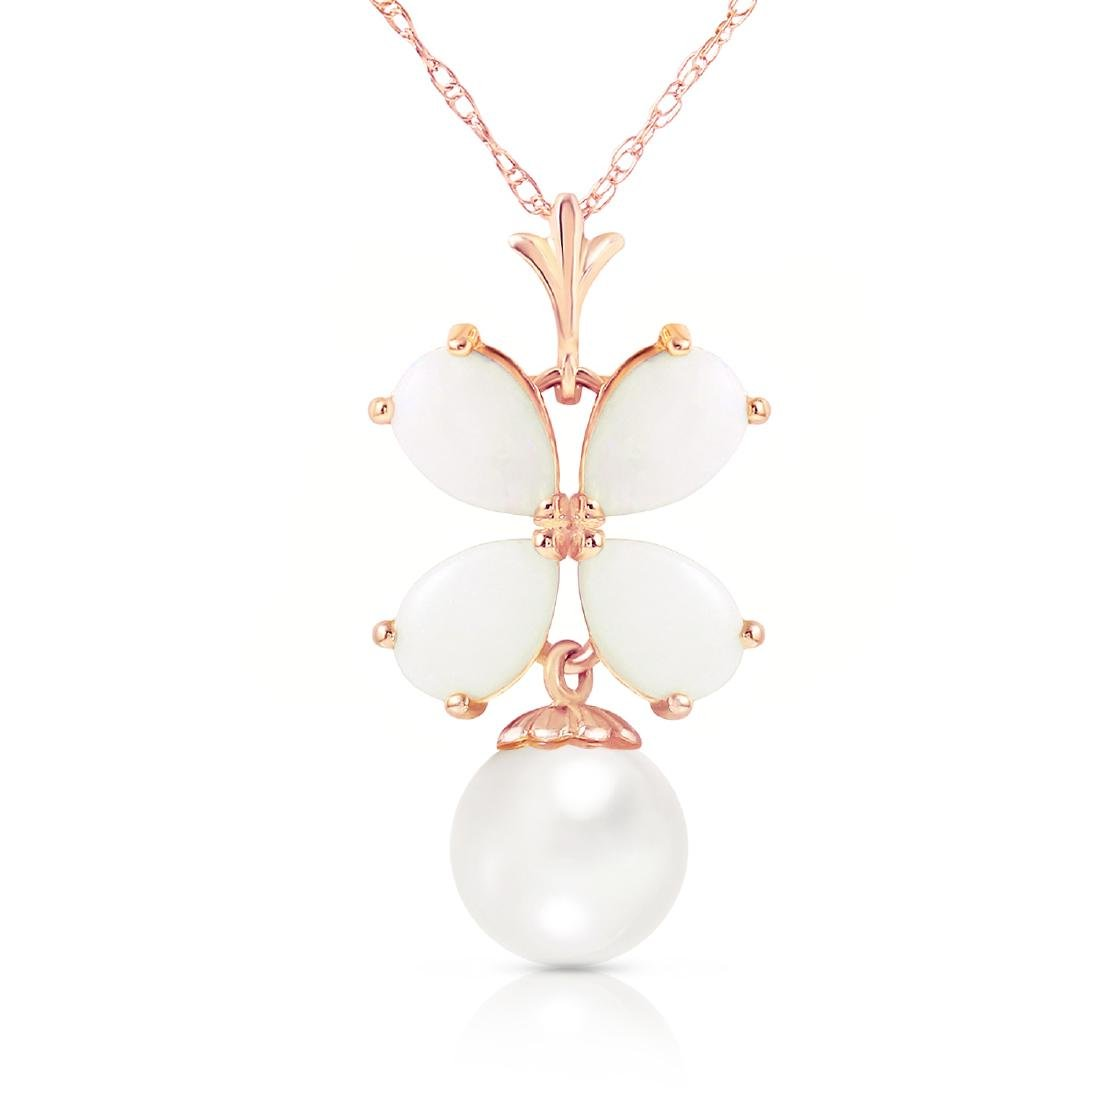 Genuine 3 ctw Opal & Pearl Necklace Jewelry 14KT Rose